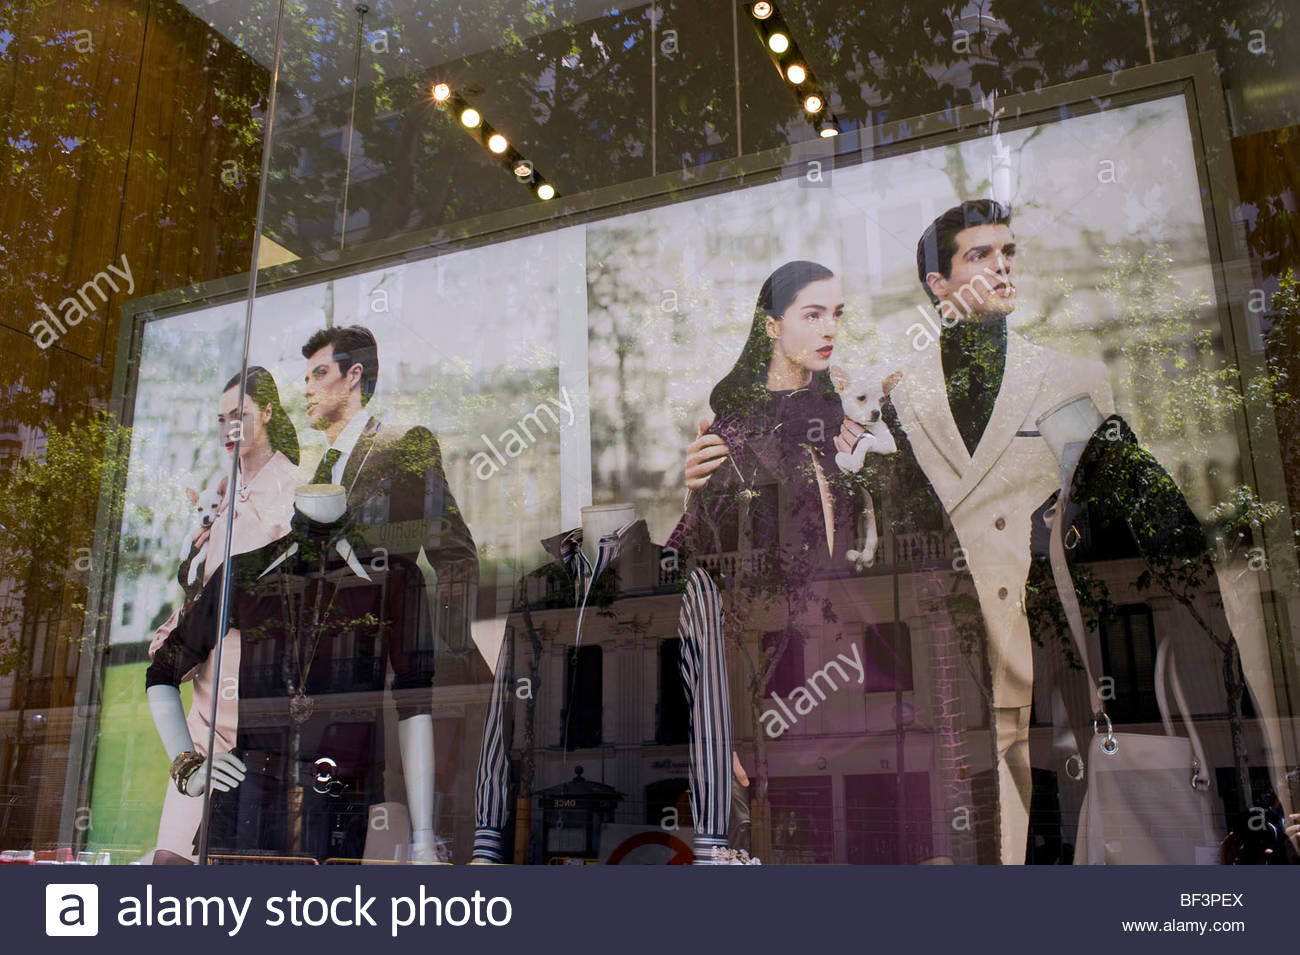 Designer shop window on the street in Madrid - Stock Image